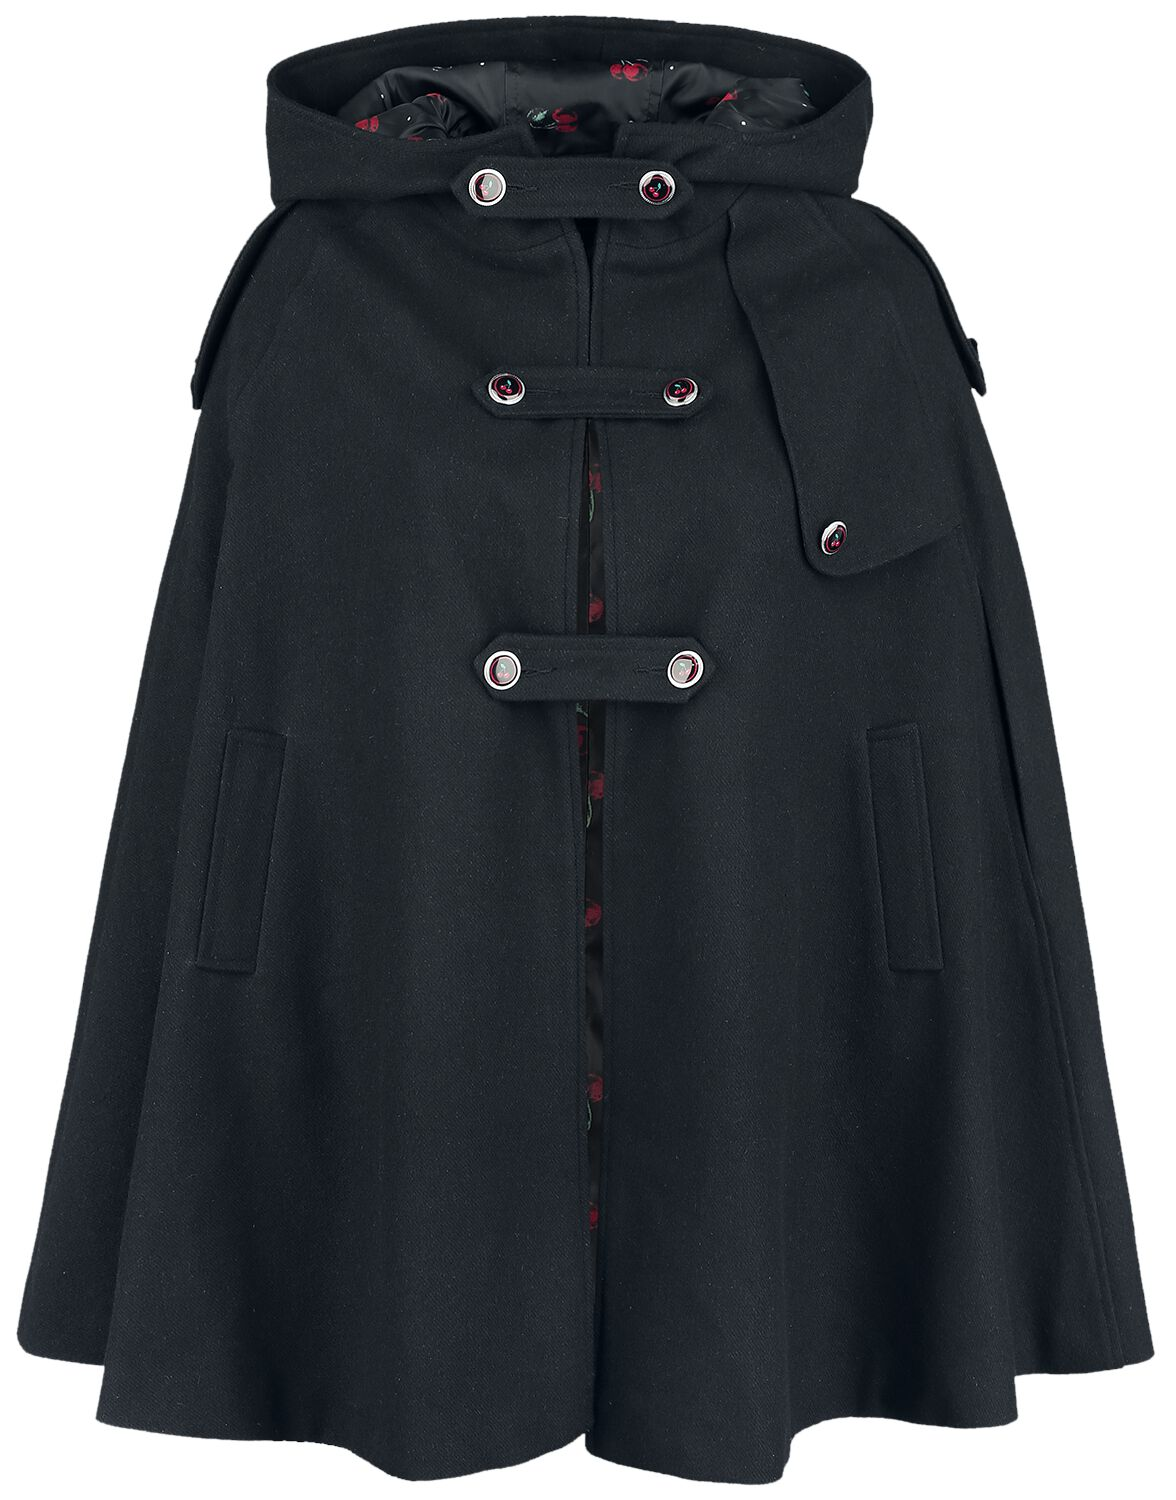 Image of   Pussy Deluxe Sweet Cherry Girl Cape Kappe sort